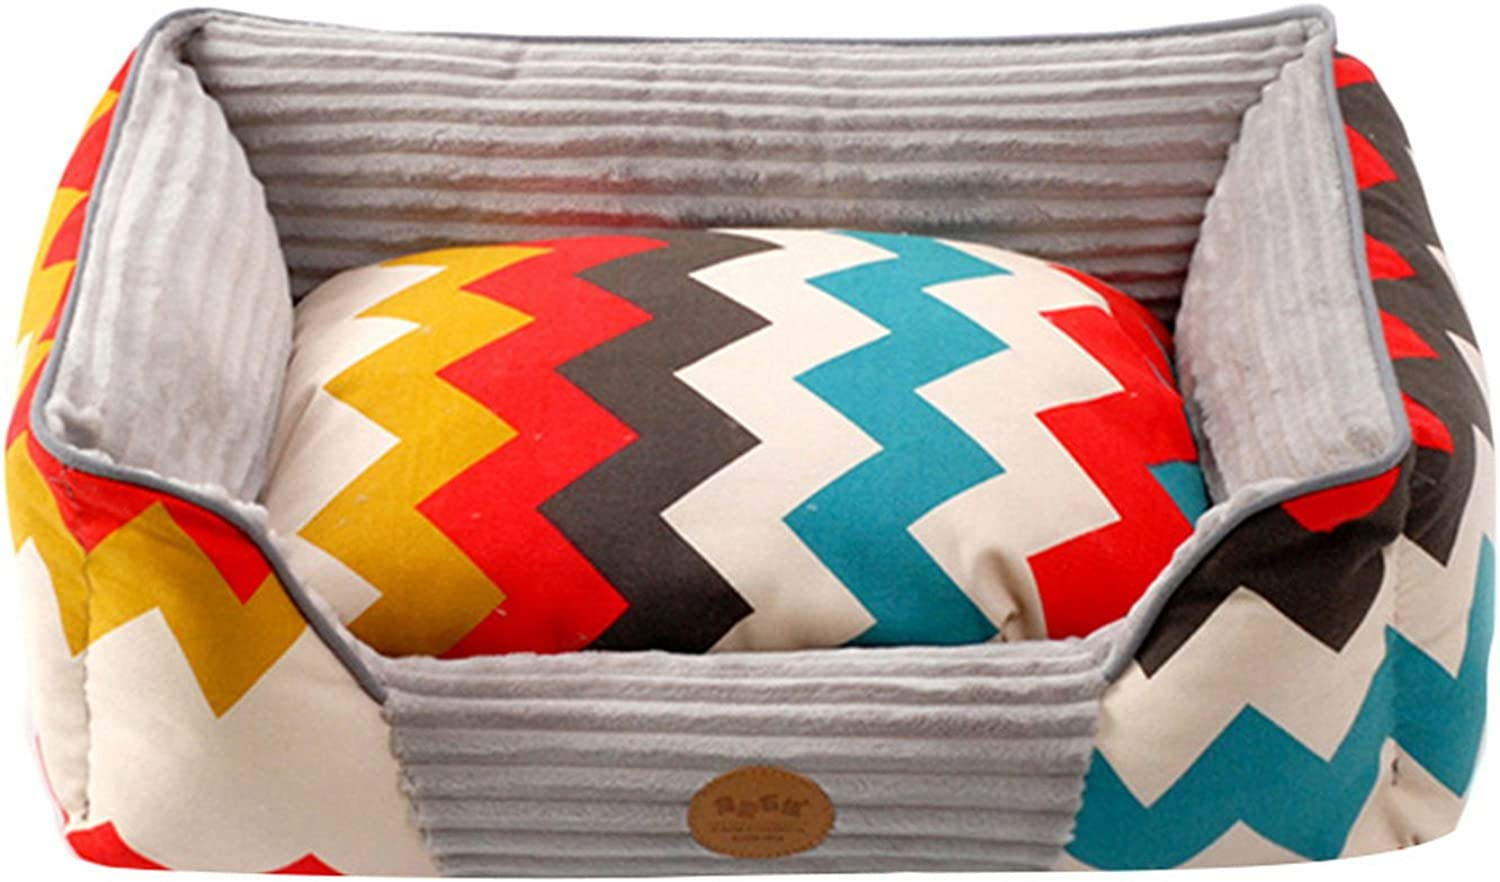 Jelord Multicolor Zigzag Cuddler Pet Bed Pillow Mat, Small, 24x20x7 Inches